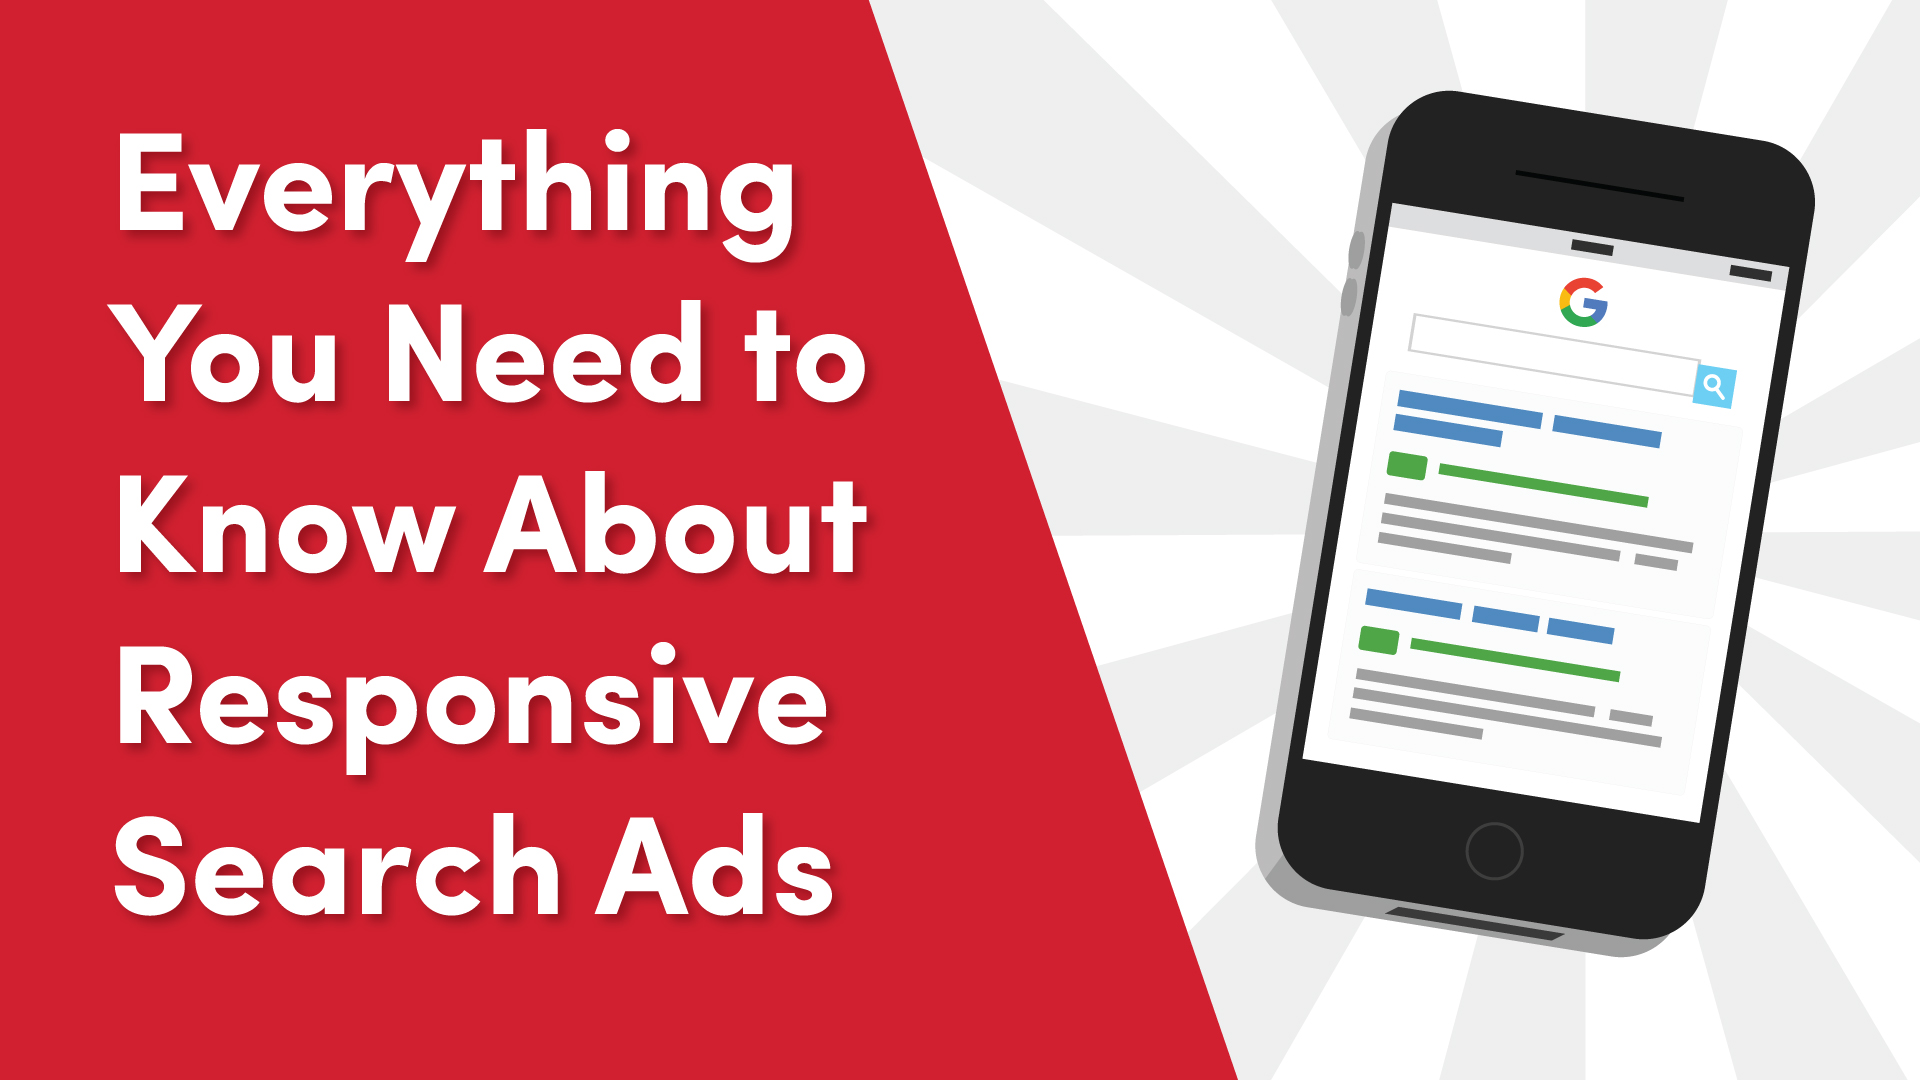 Everything You Need To Know About Responsive Search Ads